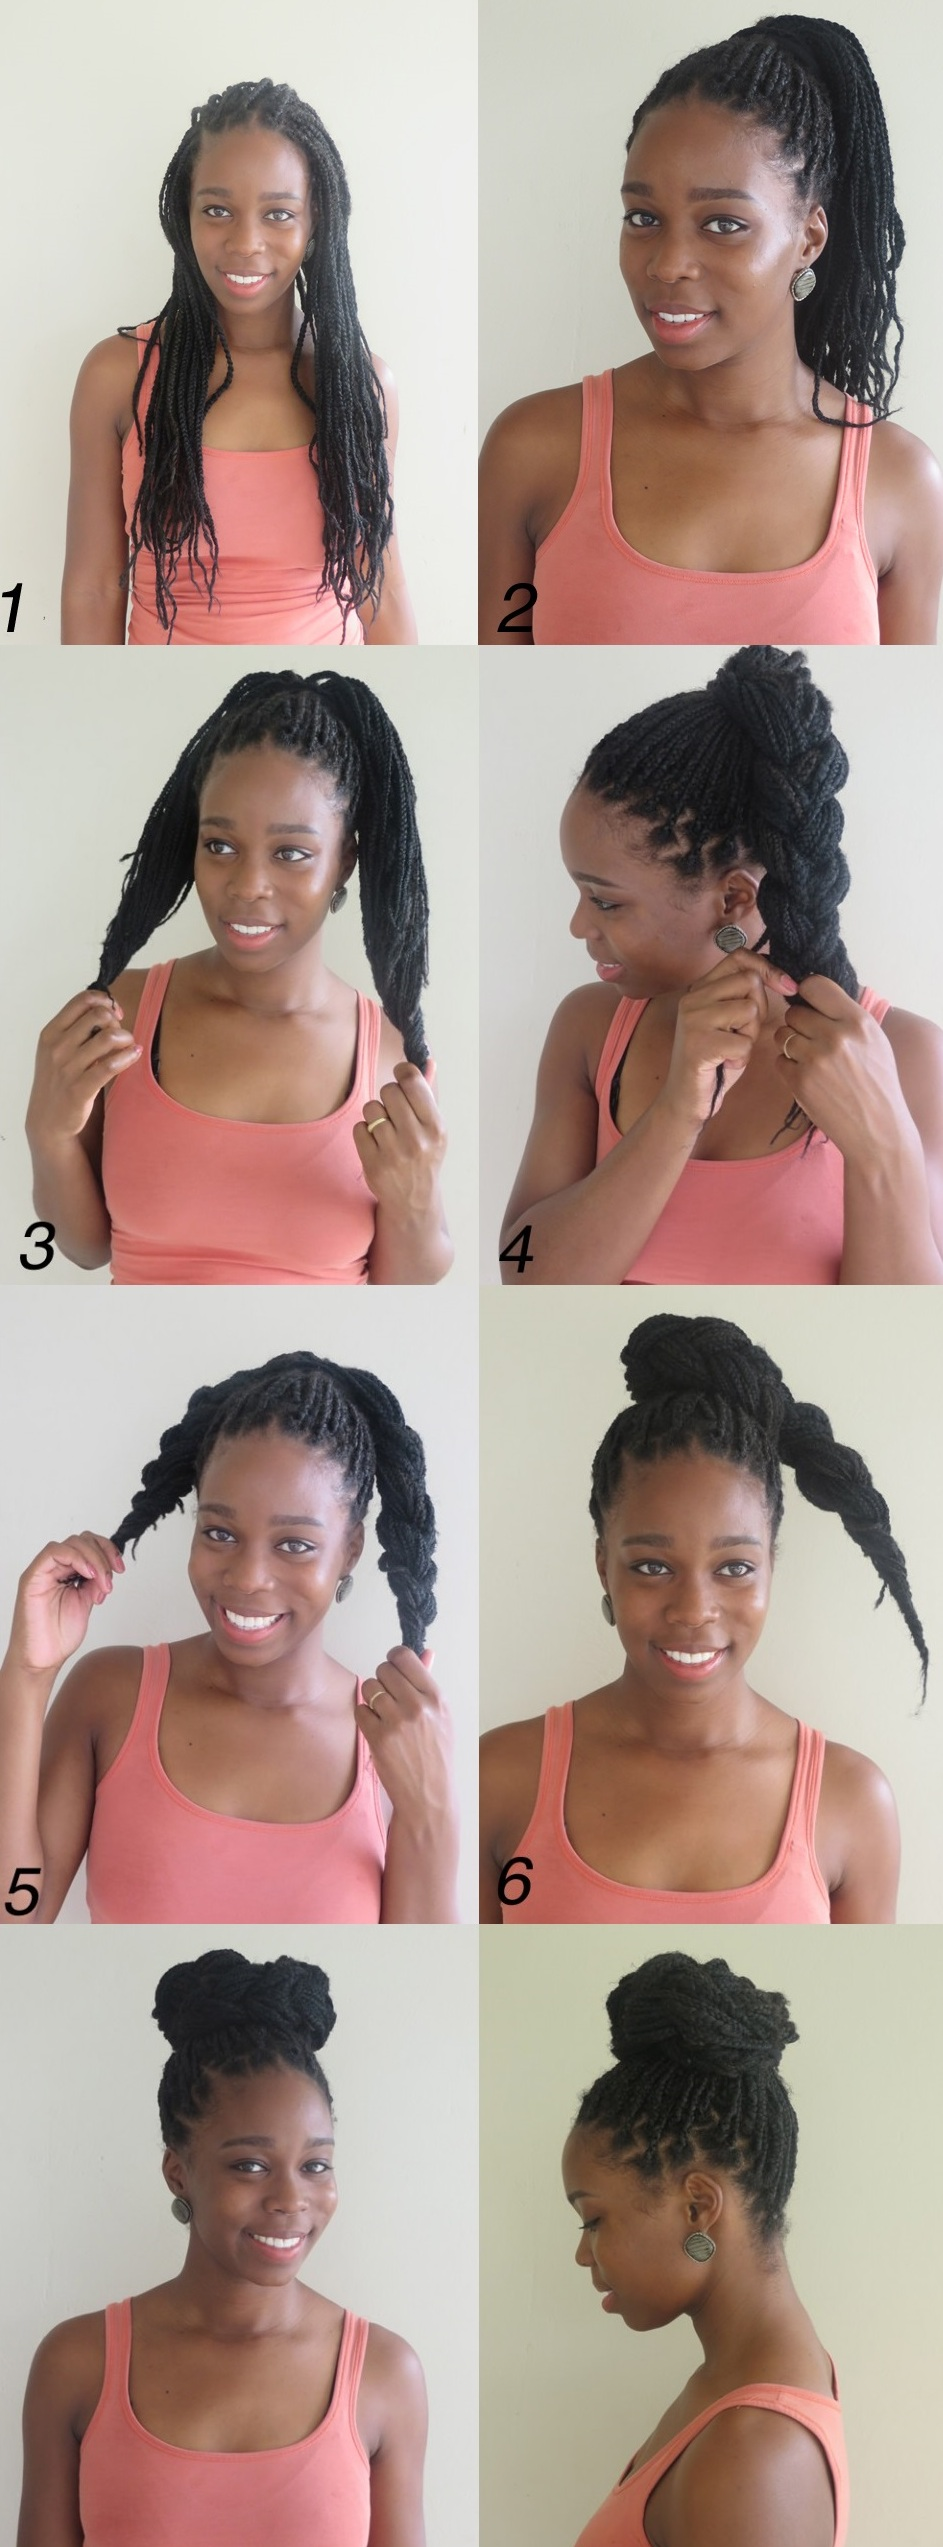 how to style your hair with braids 10 directing you on how to style box braids 6803 | 2 braided bun from box braids tutorial